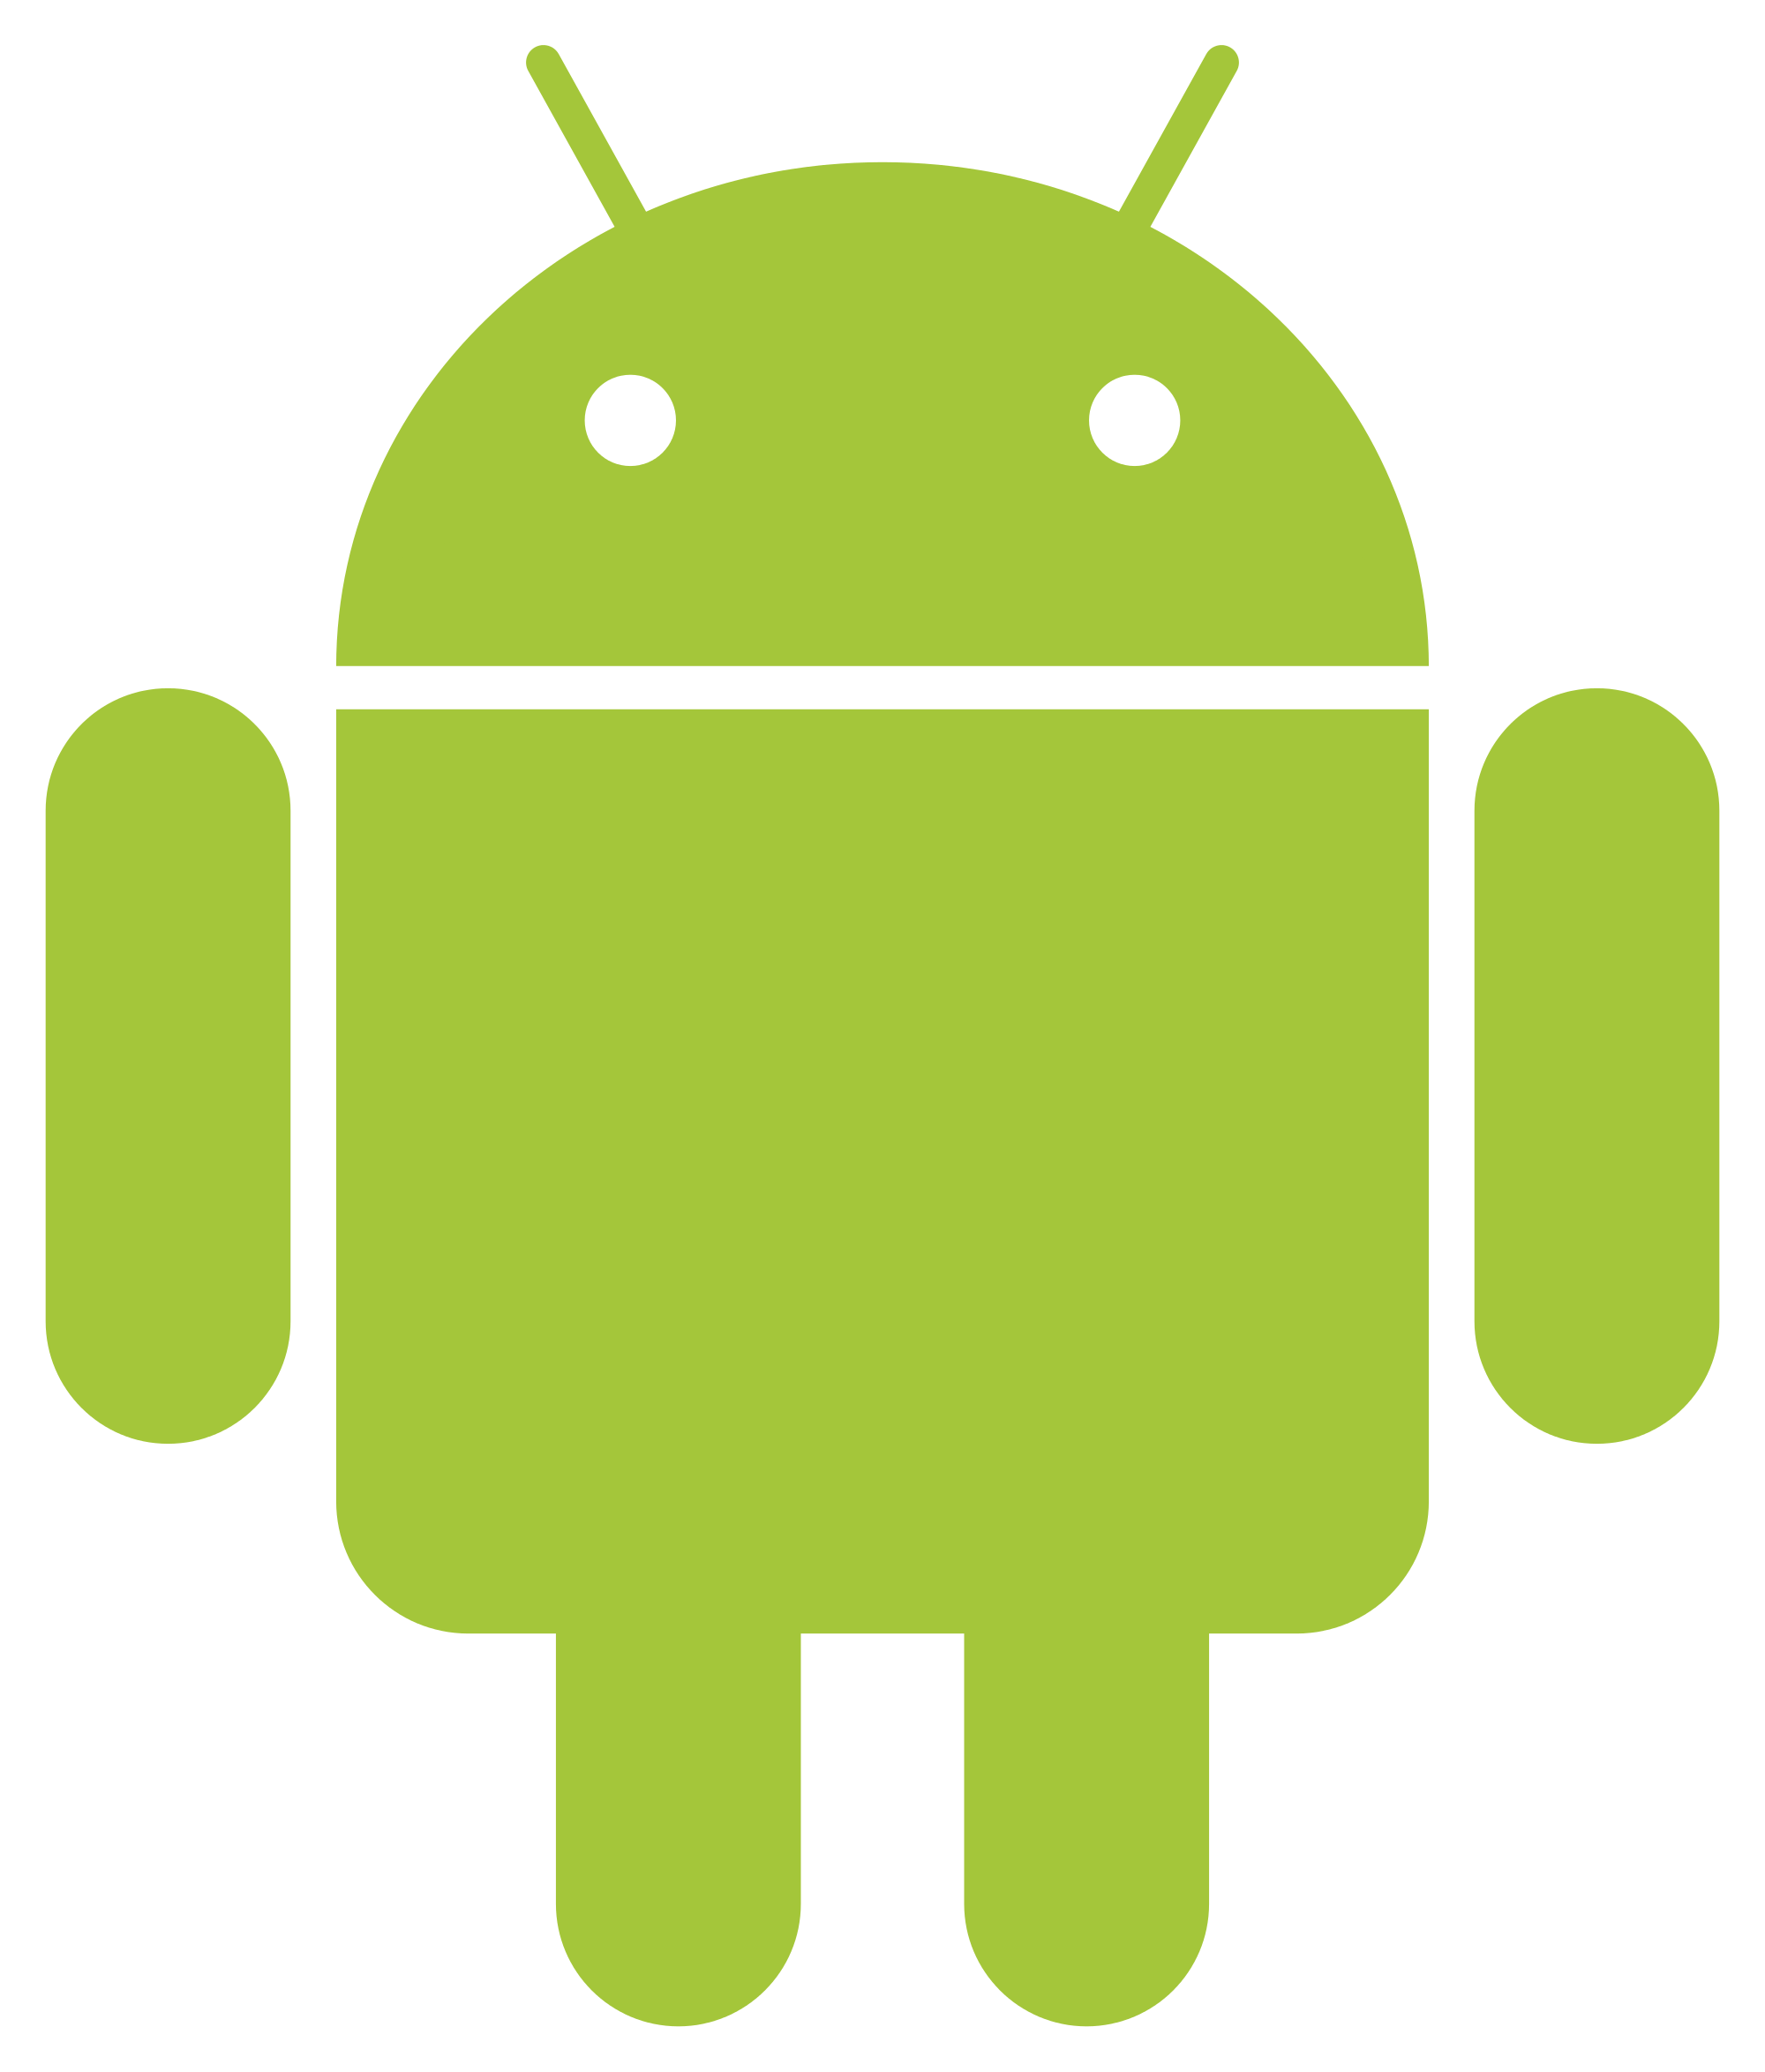 Android green transparent png. Family clipart robot